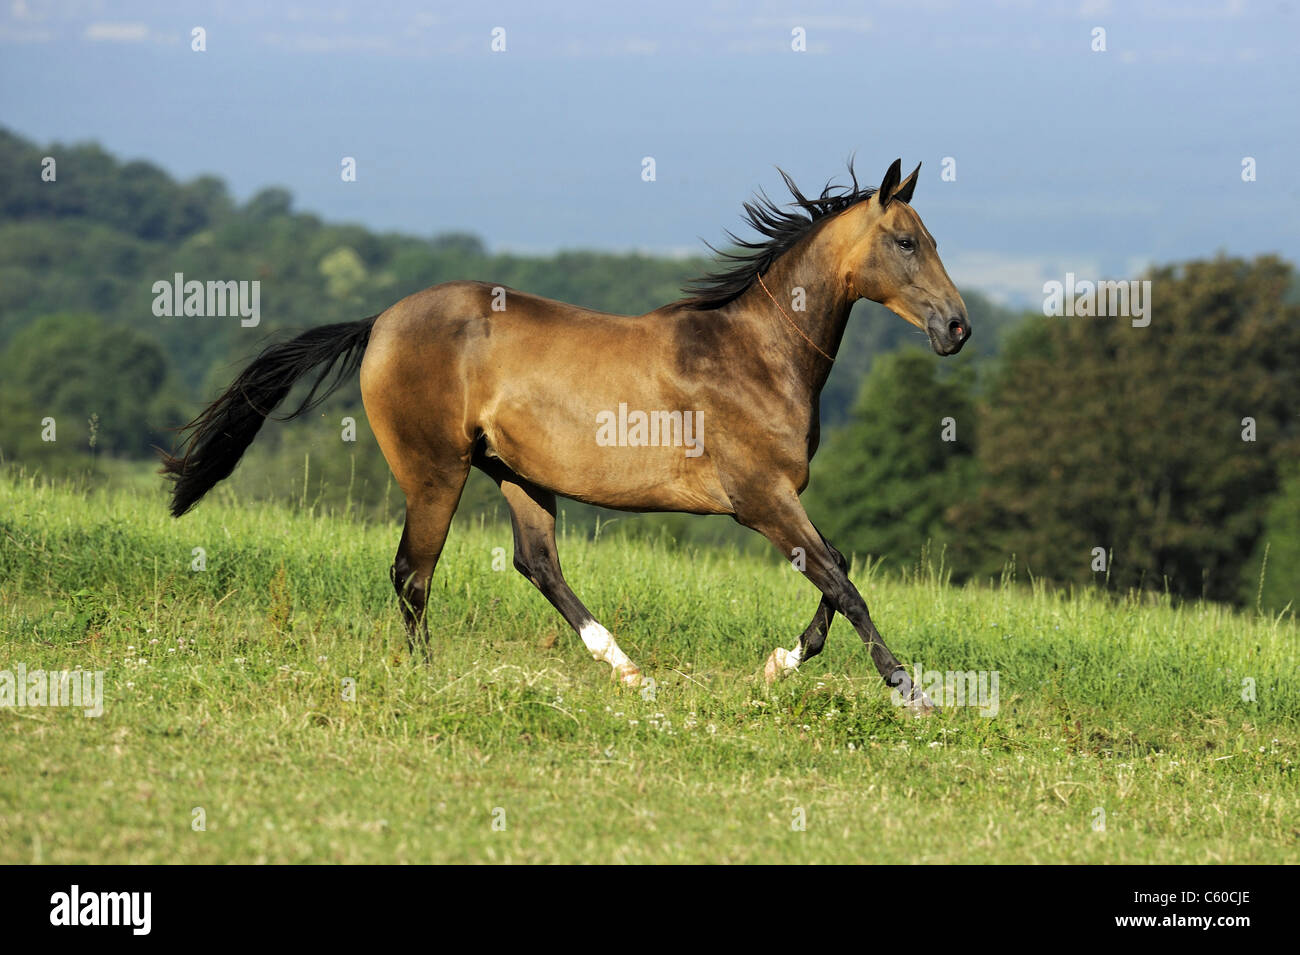 Akhal-Teke (Equus ferus caballus). Dun horse in a gallop on a meadow. - Stock Image